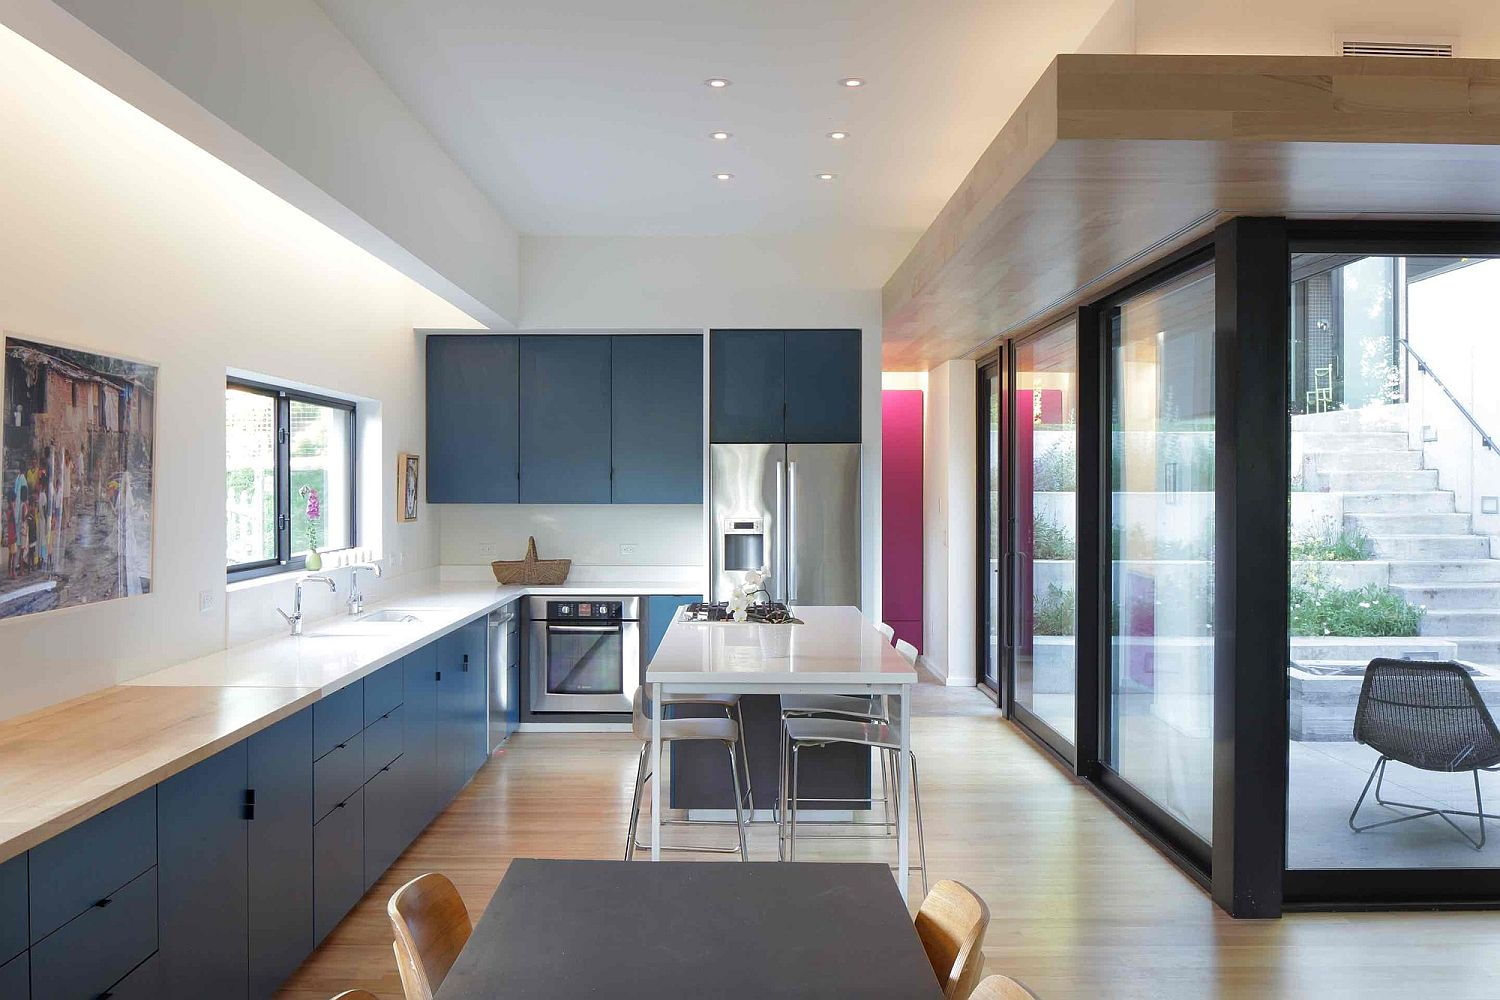 Kitchen-in-white-and-blue-on-the-lower-level